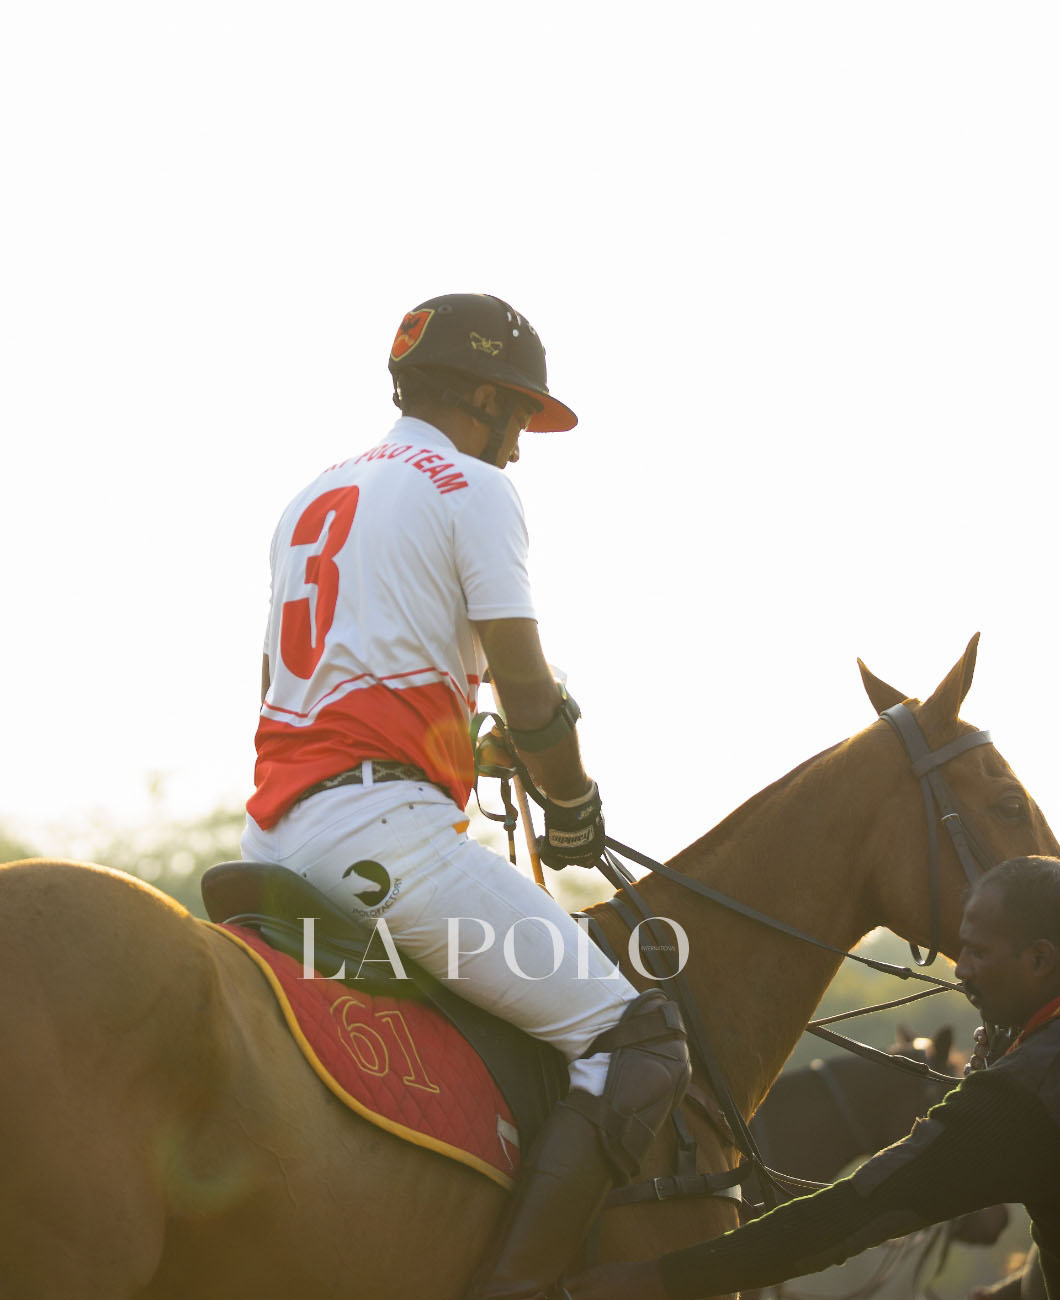 ravi-rathore-mounted-on-horse-cavalry-polo-team-61st-cavalry-la-polo-indian-polo-season